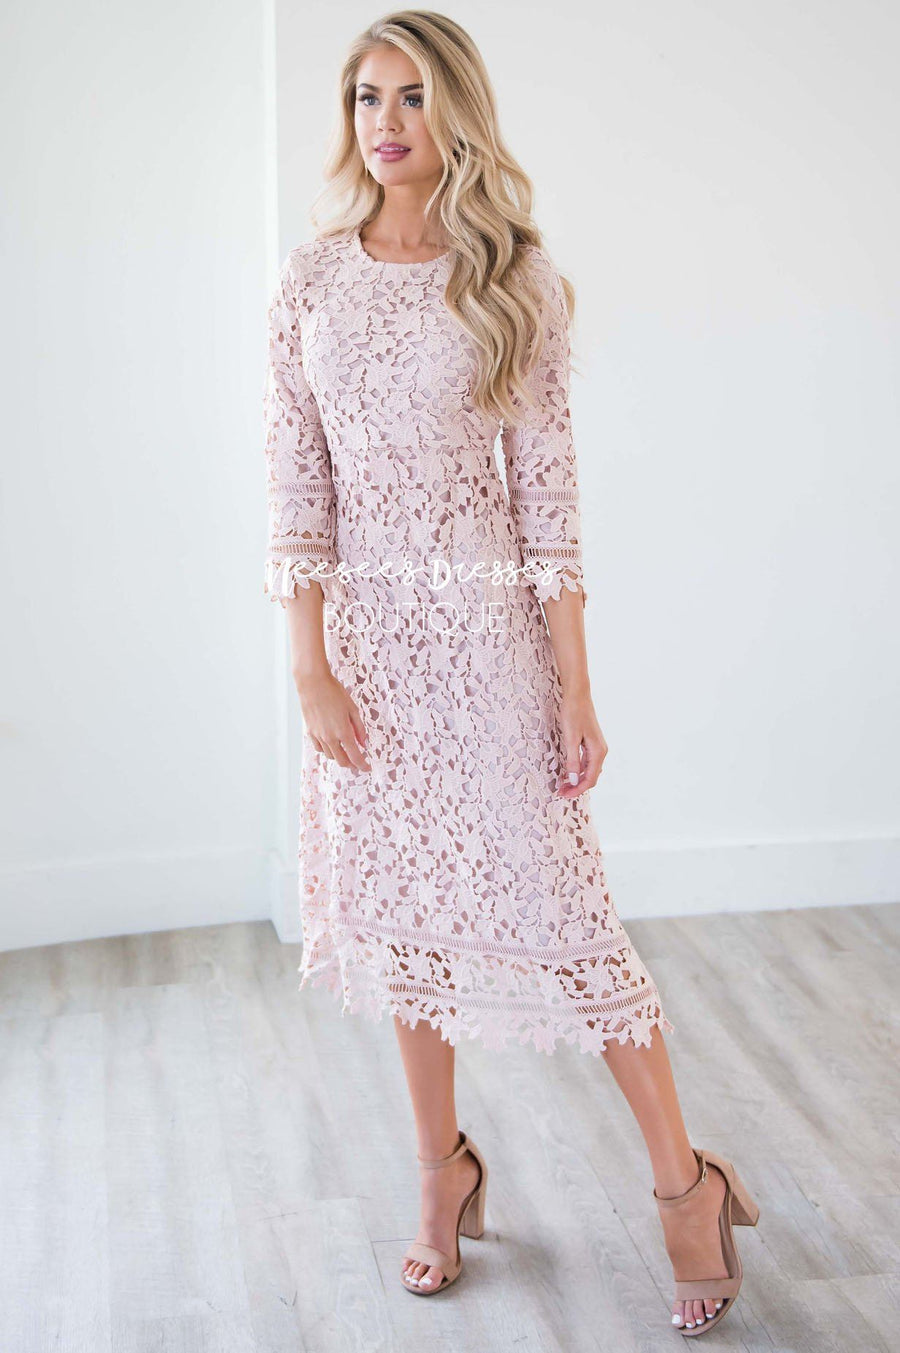 The Kaveah Lace Dress